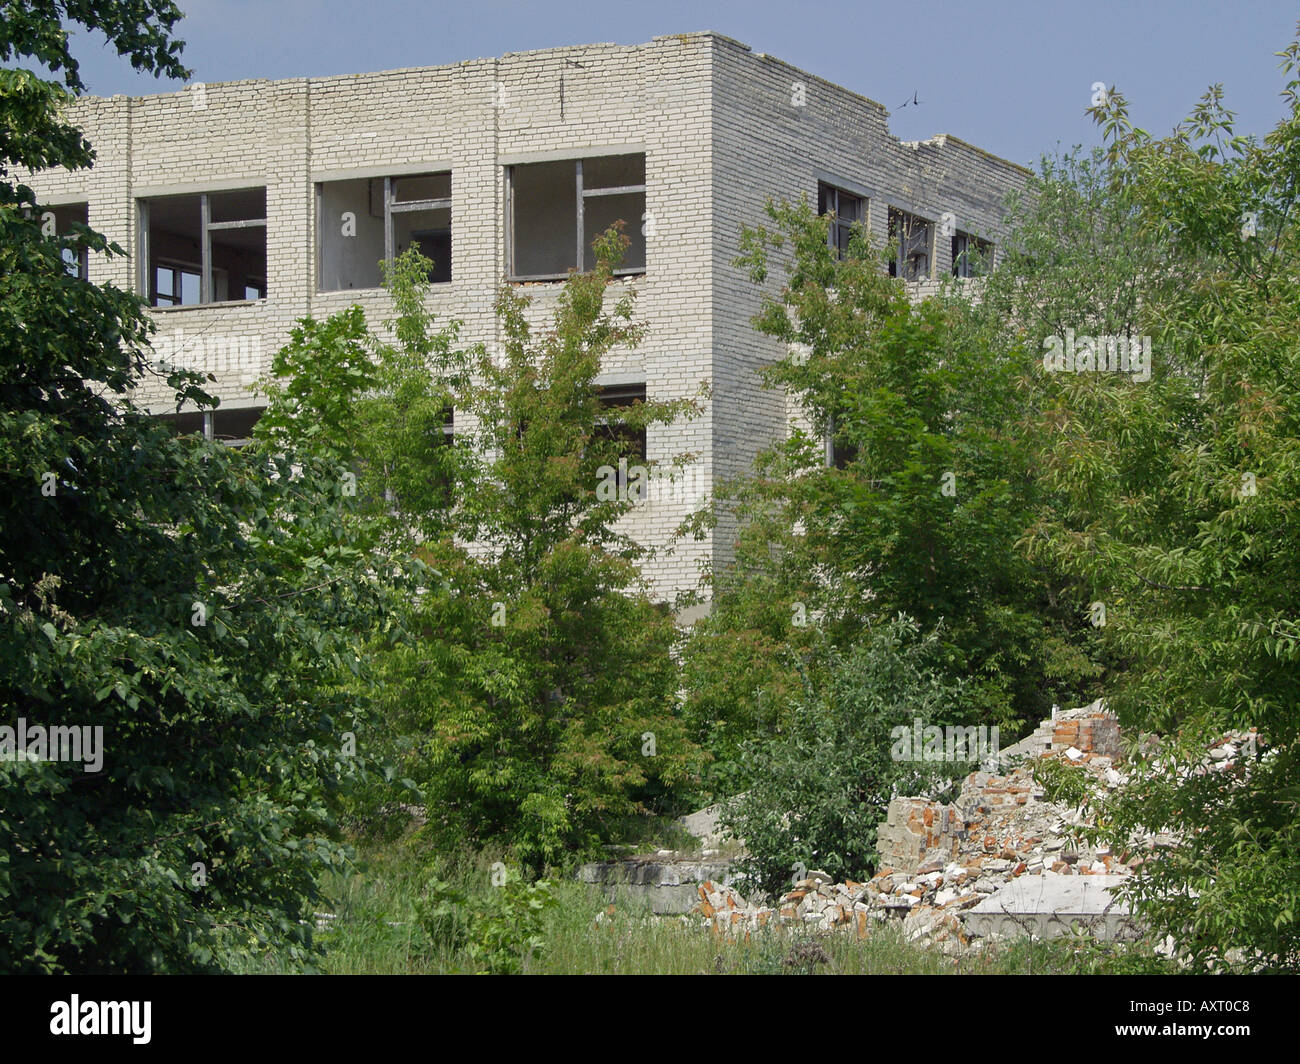 Chernobyl exclusion zone abandoned derelict decaying three storey white brick building amidst rich thriving foliage, Belarus - Stock Image